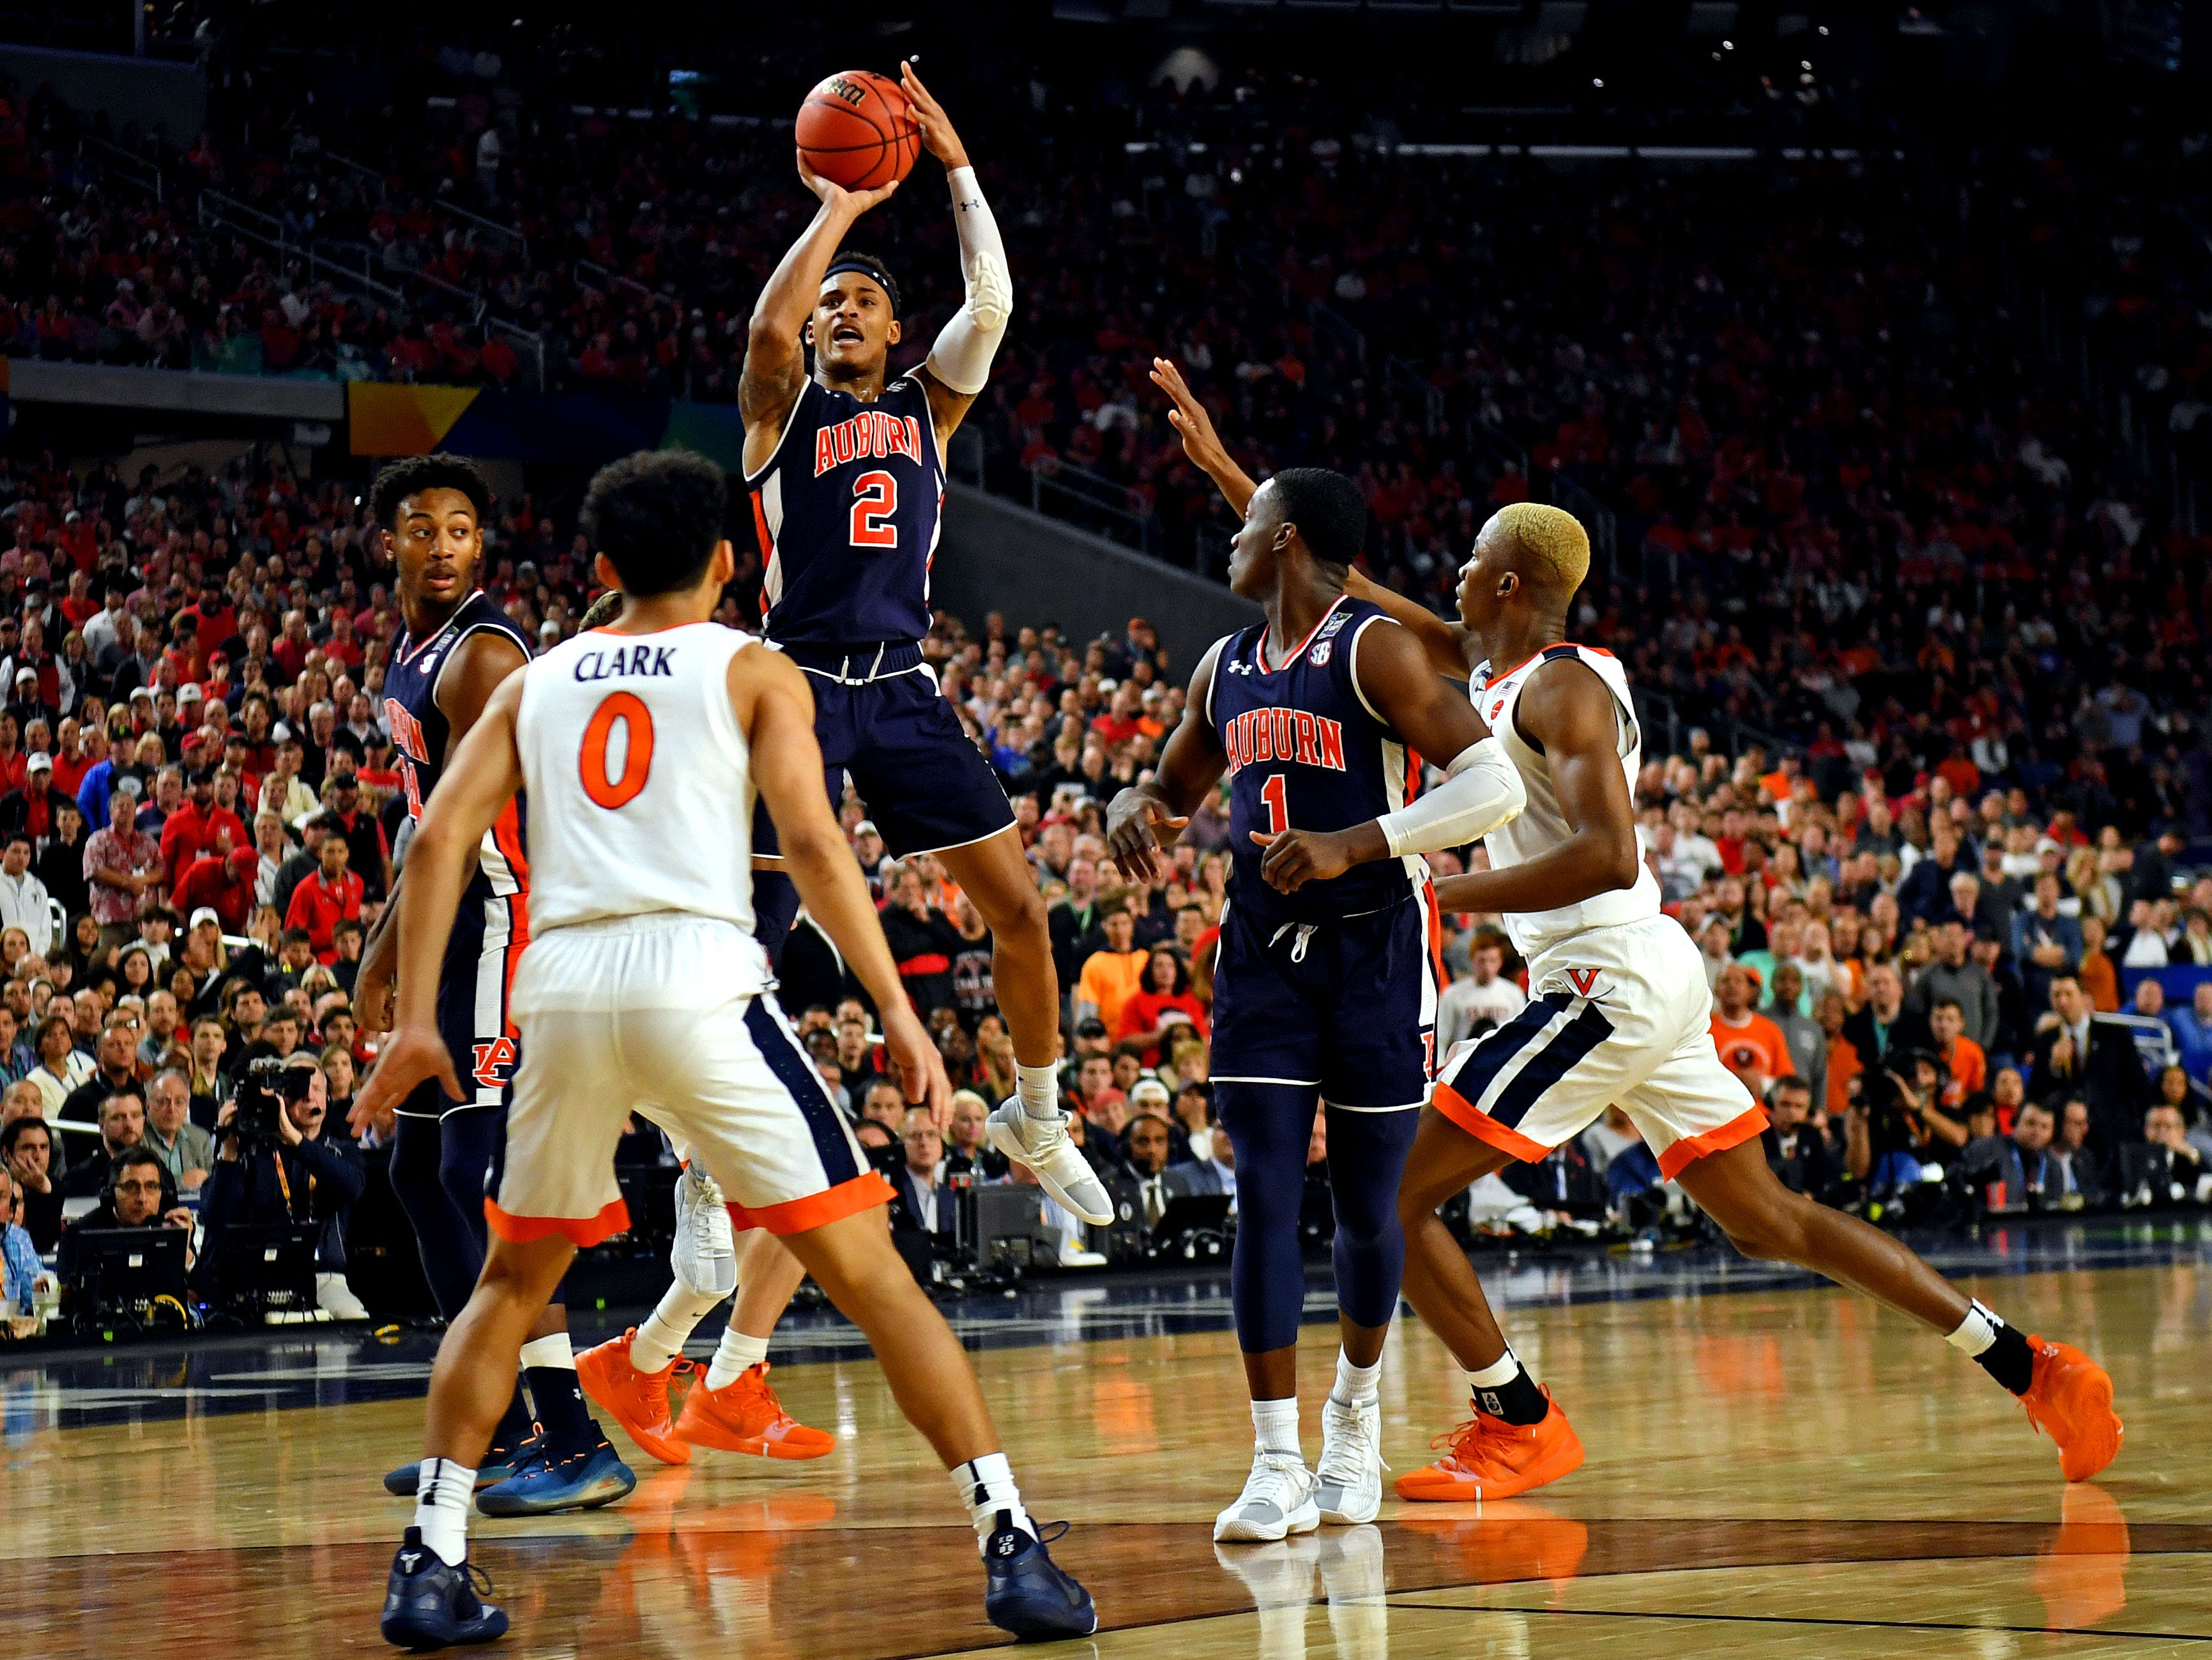 Auburn Tigers guard Bryce Brown (2) shoots the ball against the Virginia Cavaliers.